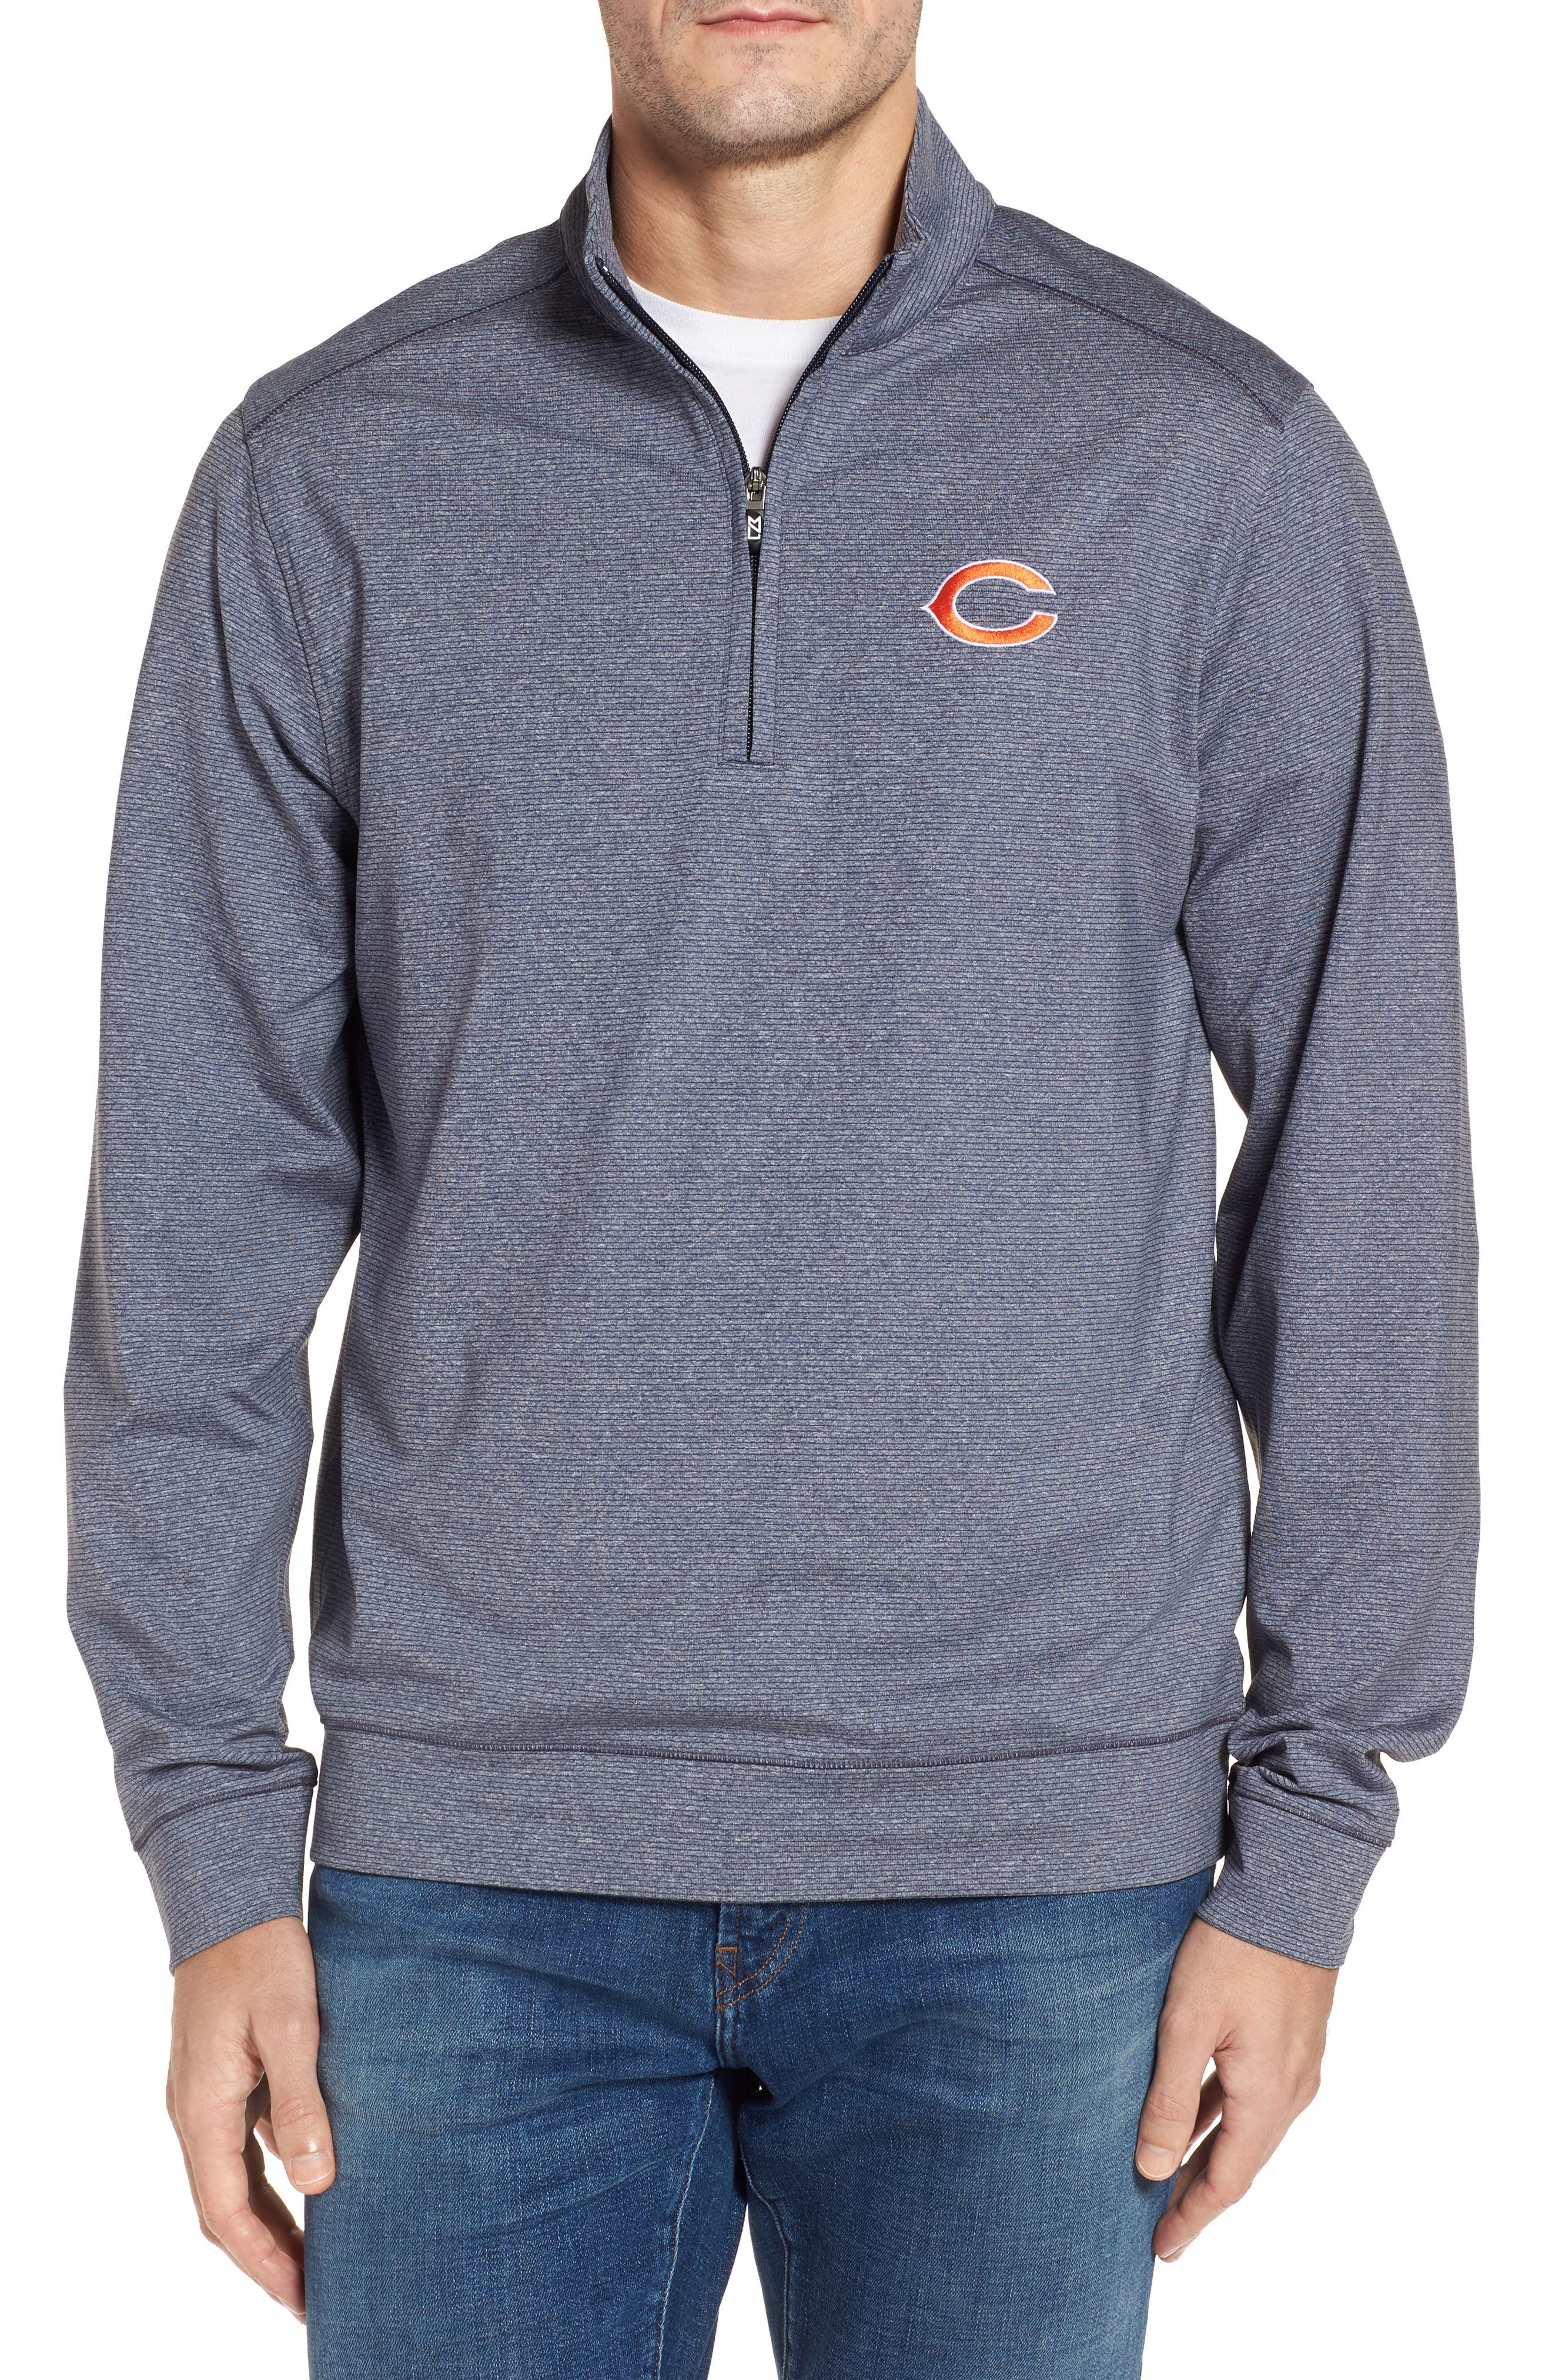 Shoreline - Chicago Bears Half Zip Pullover,                             Main thumbnail 1, color,                             976